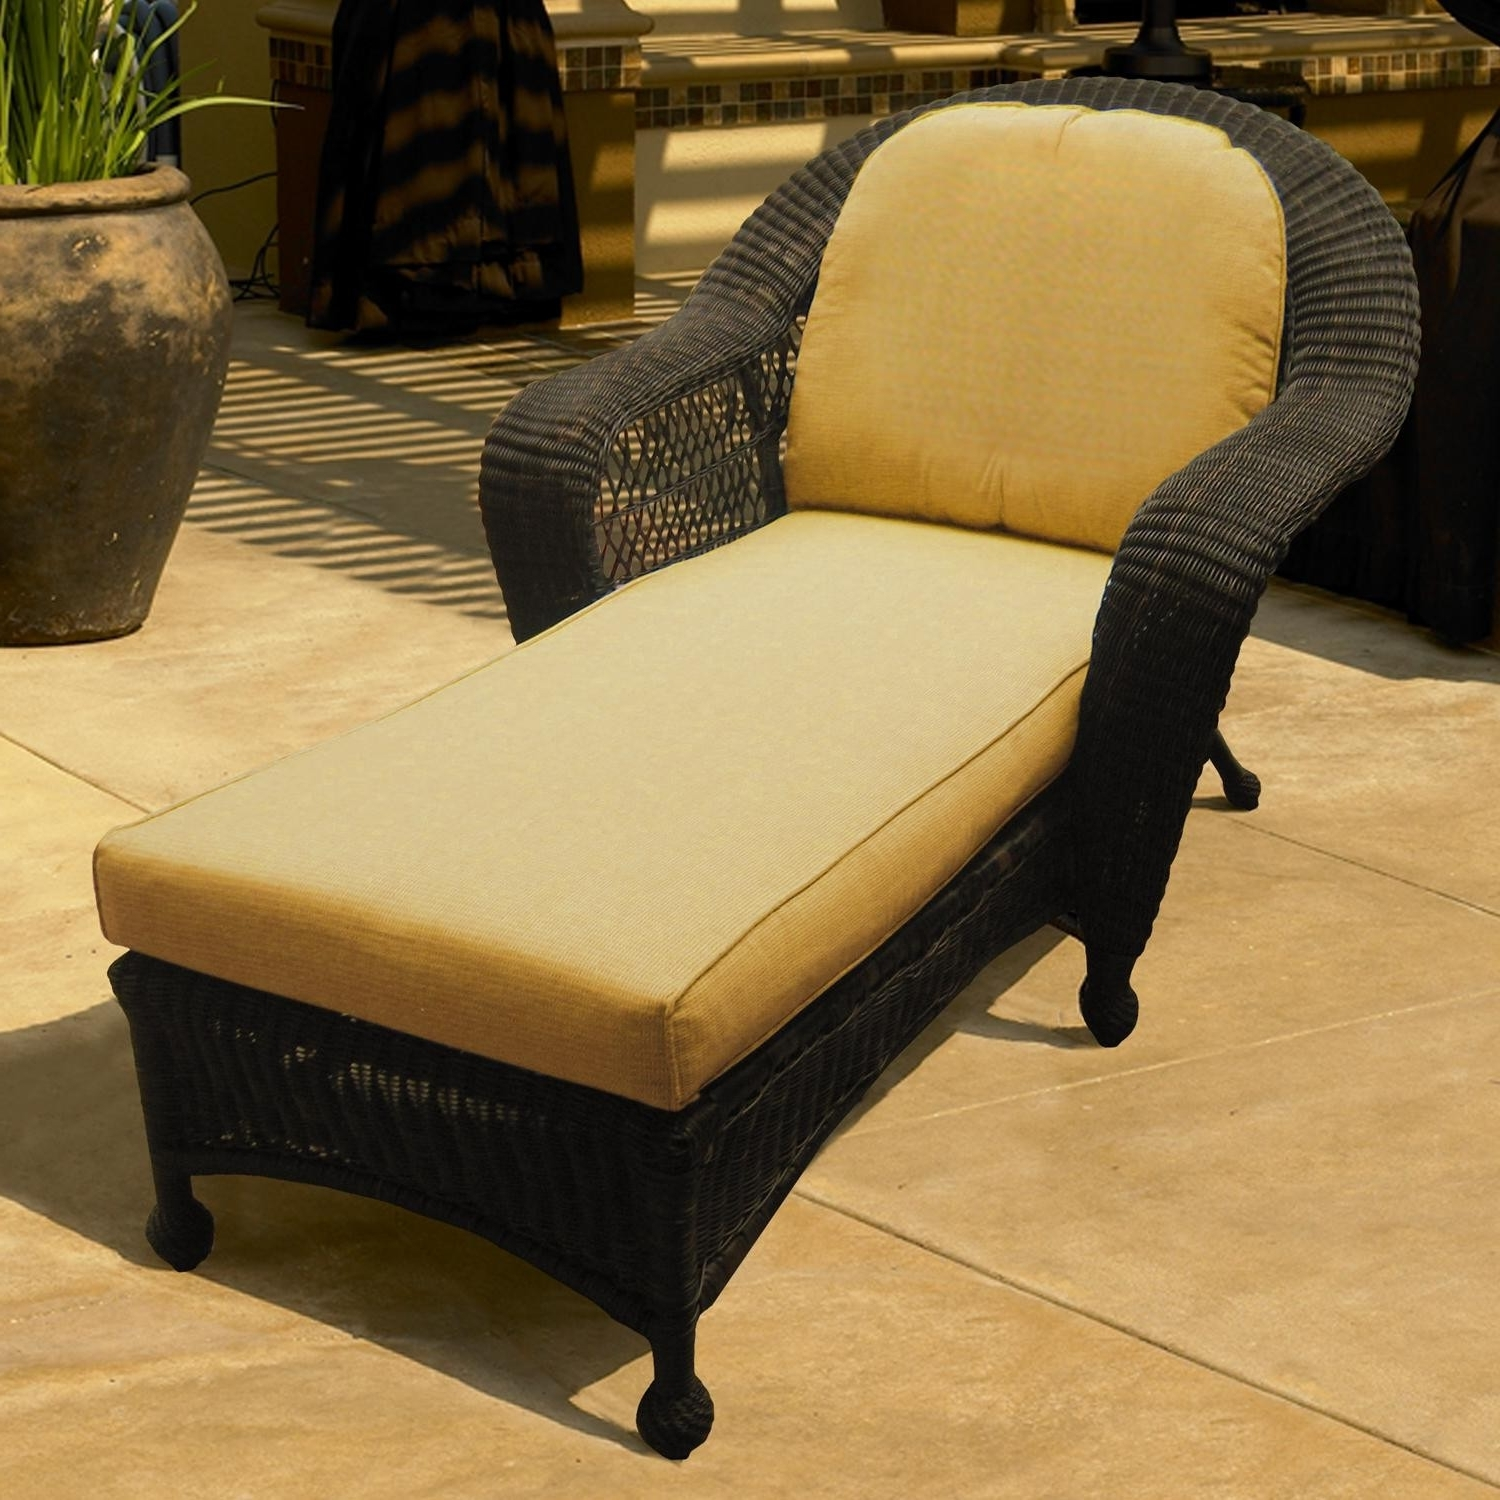 2018 Wicker Chaise Lounge Chairs For Outdoor Intended For Charleston Wicker Chaise Lounge (View 10 of 15)